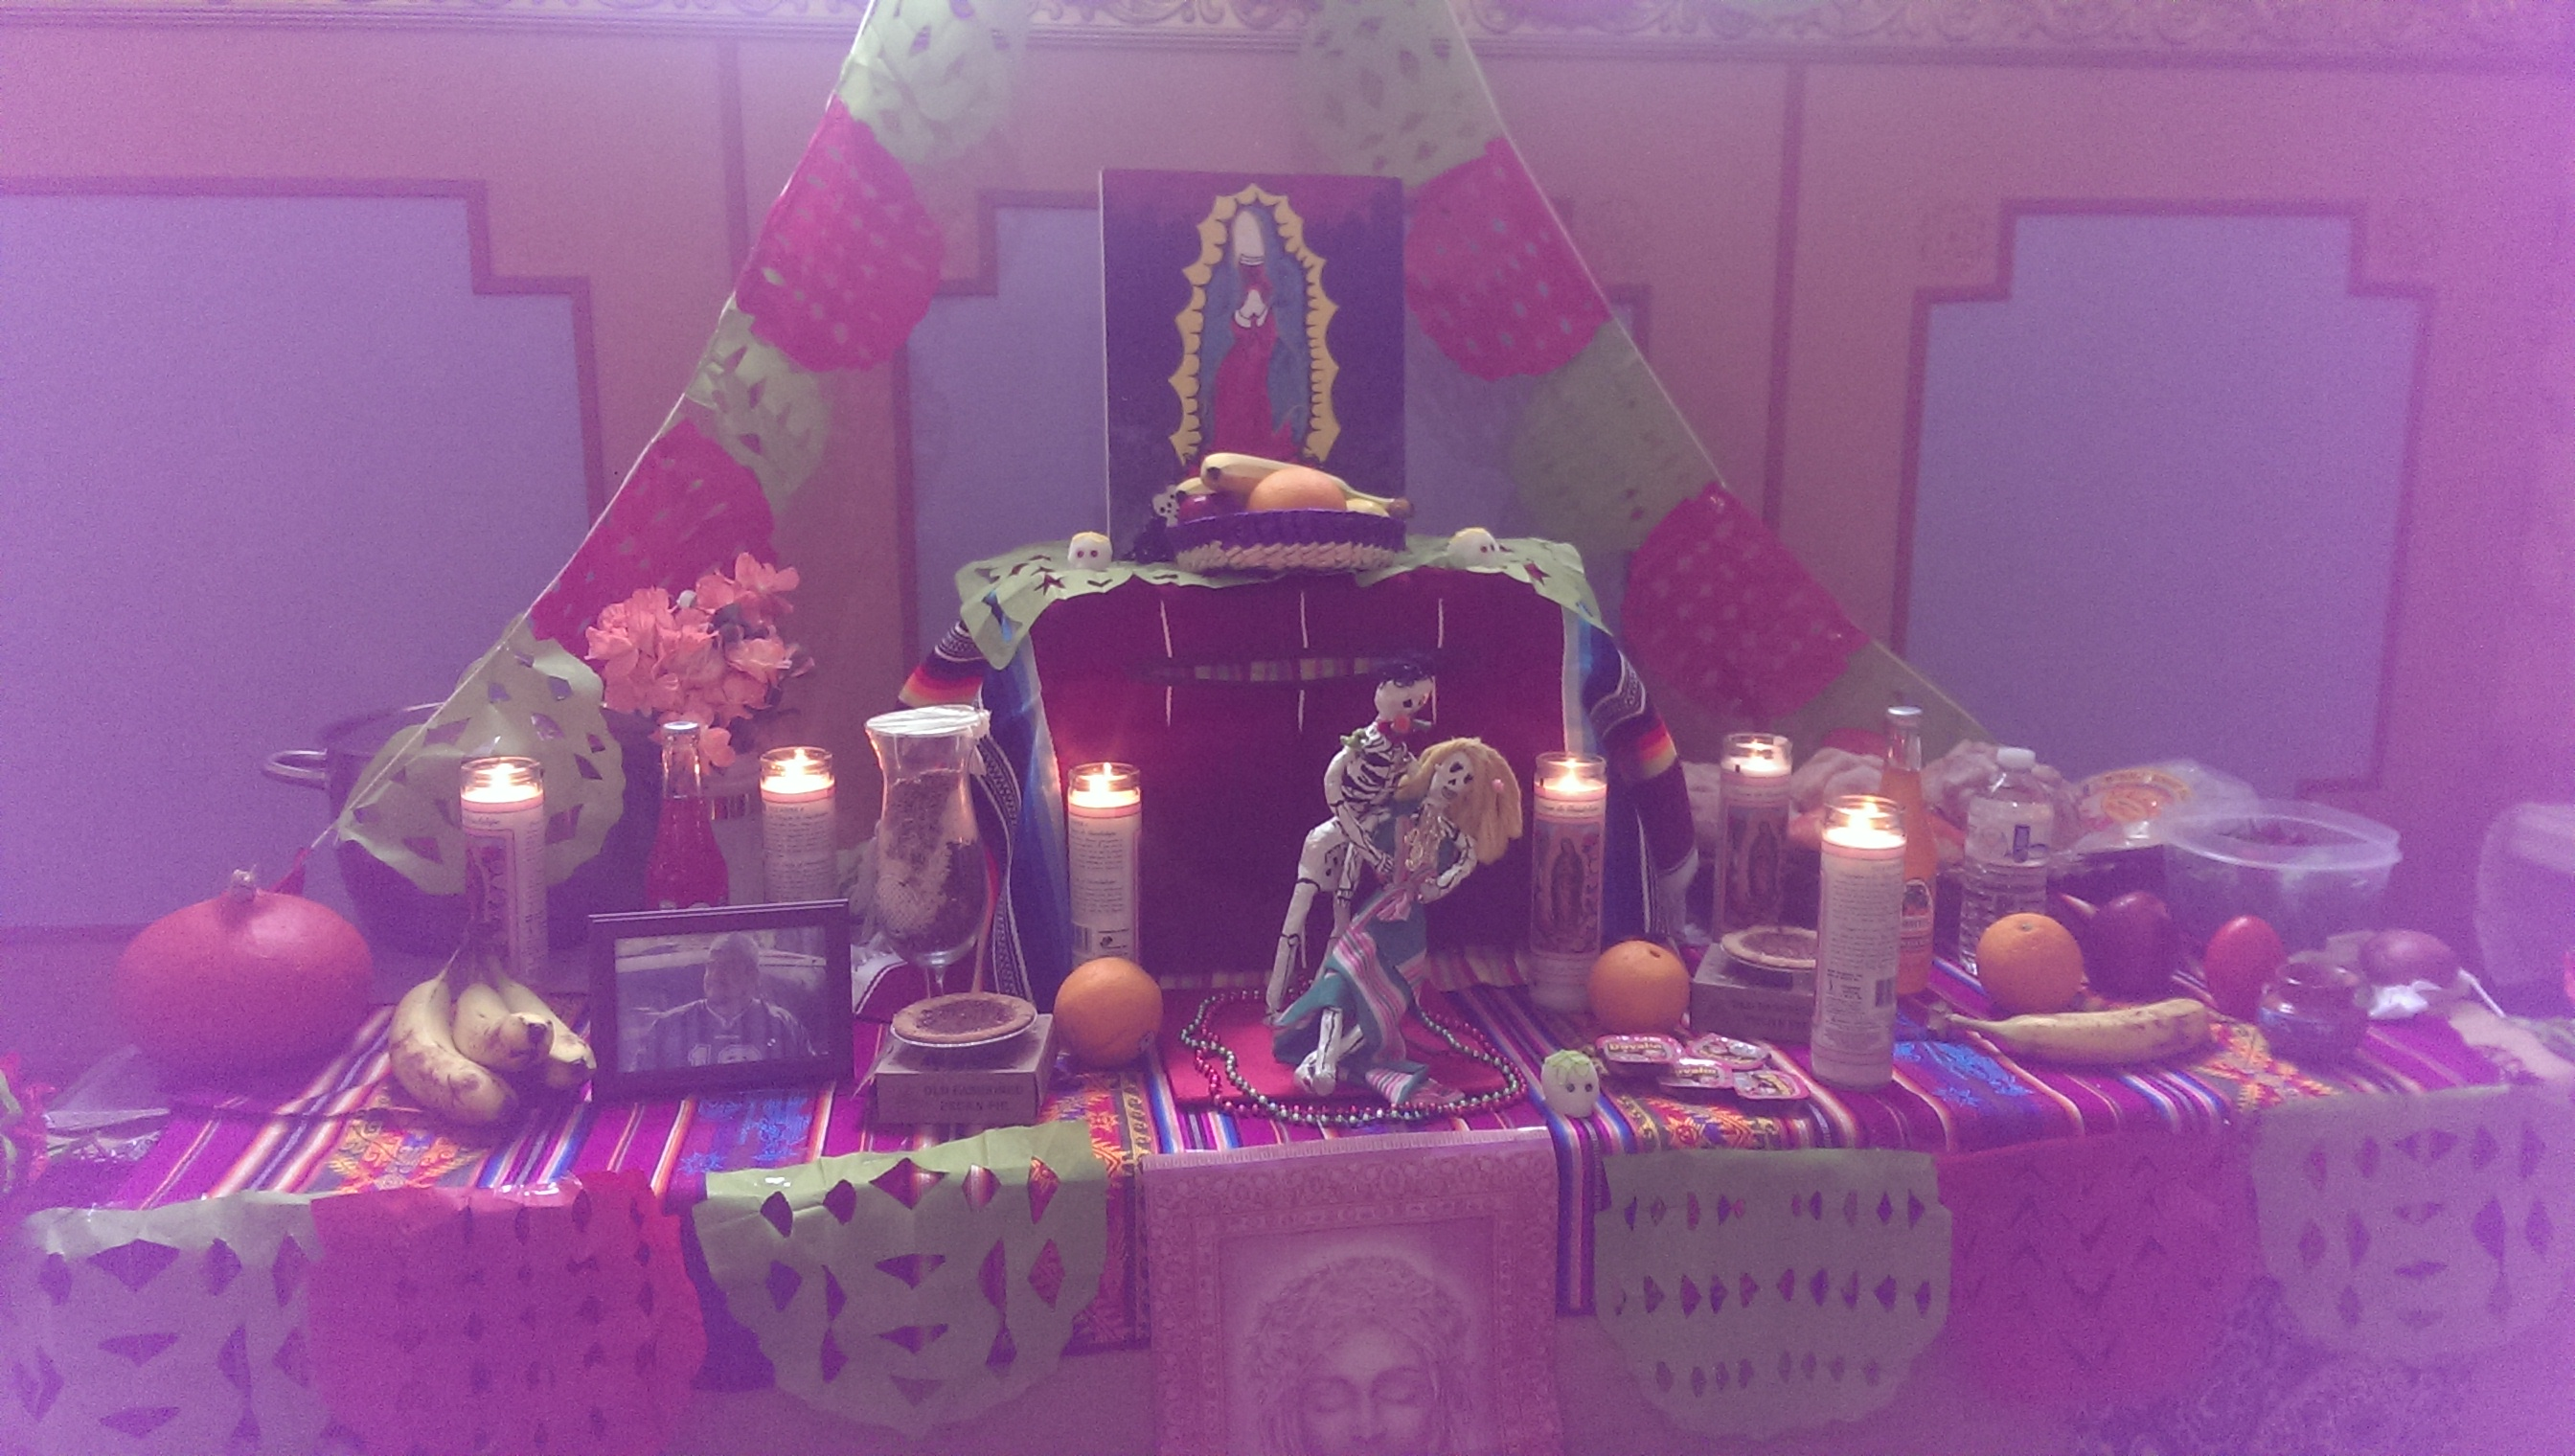 why do we celebrate the day of the dead iexcl escucha listen the day of the dead is a holiday to remember and give tribute to people who were a part of this world